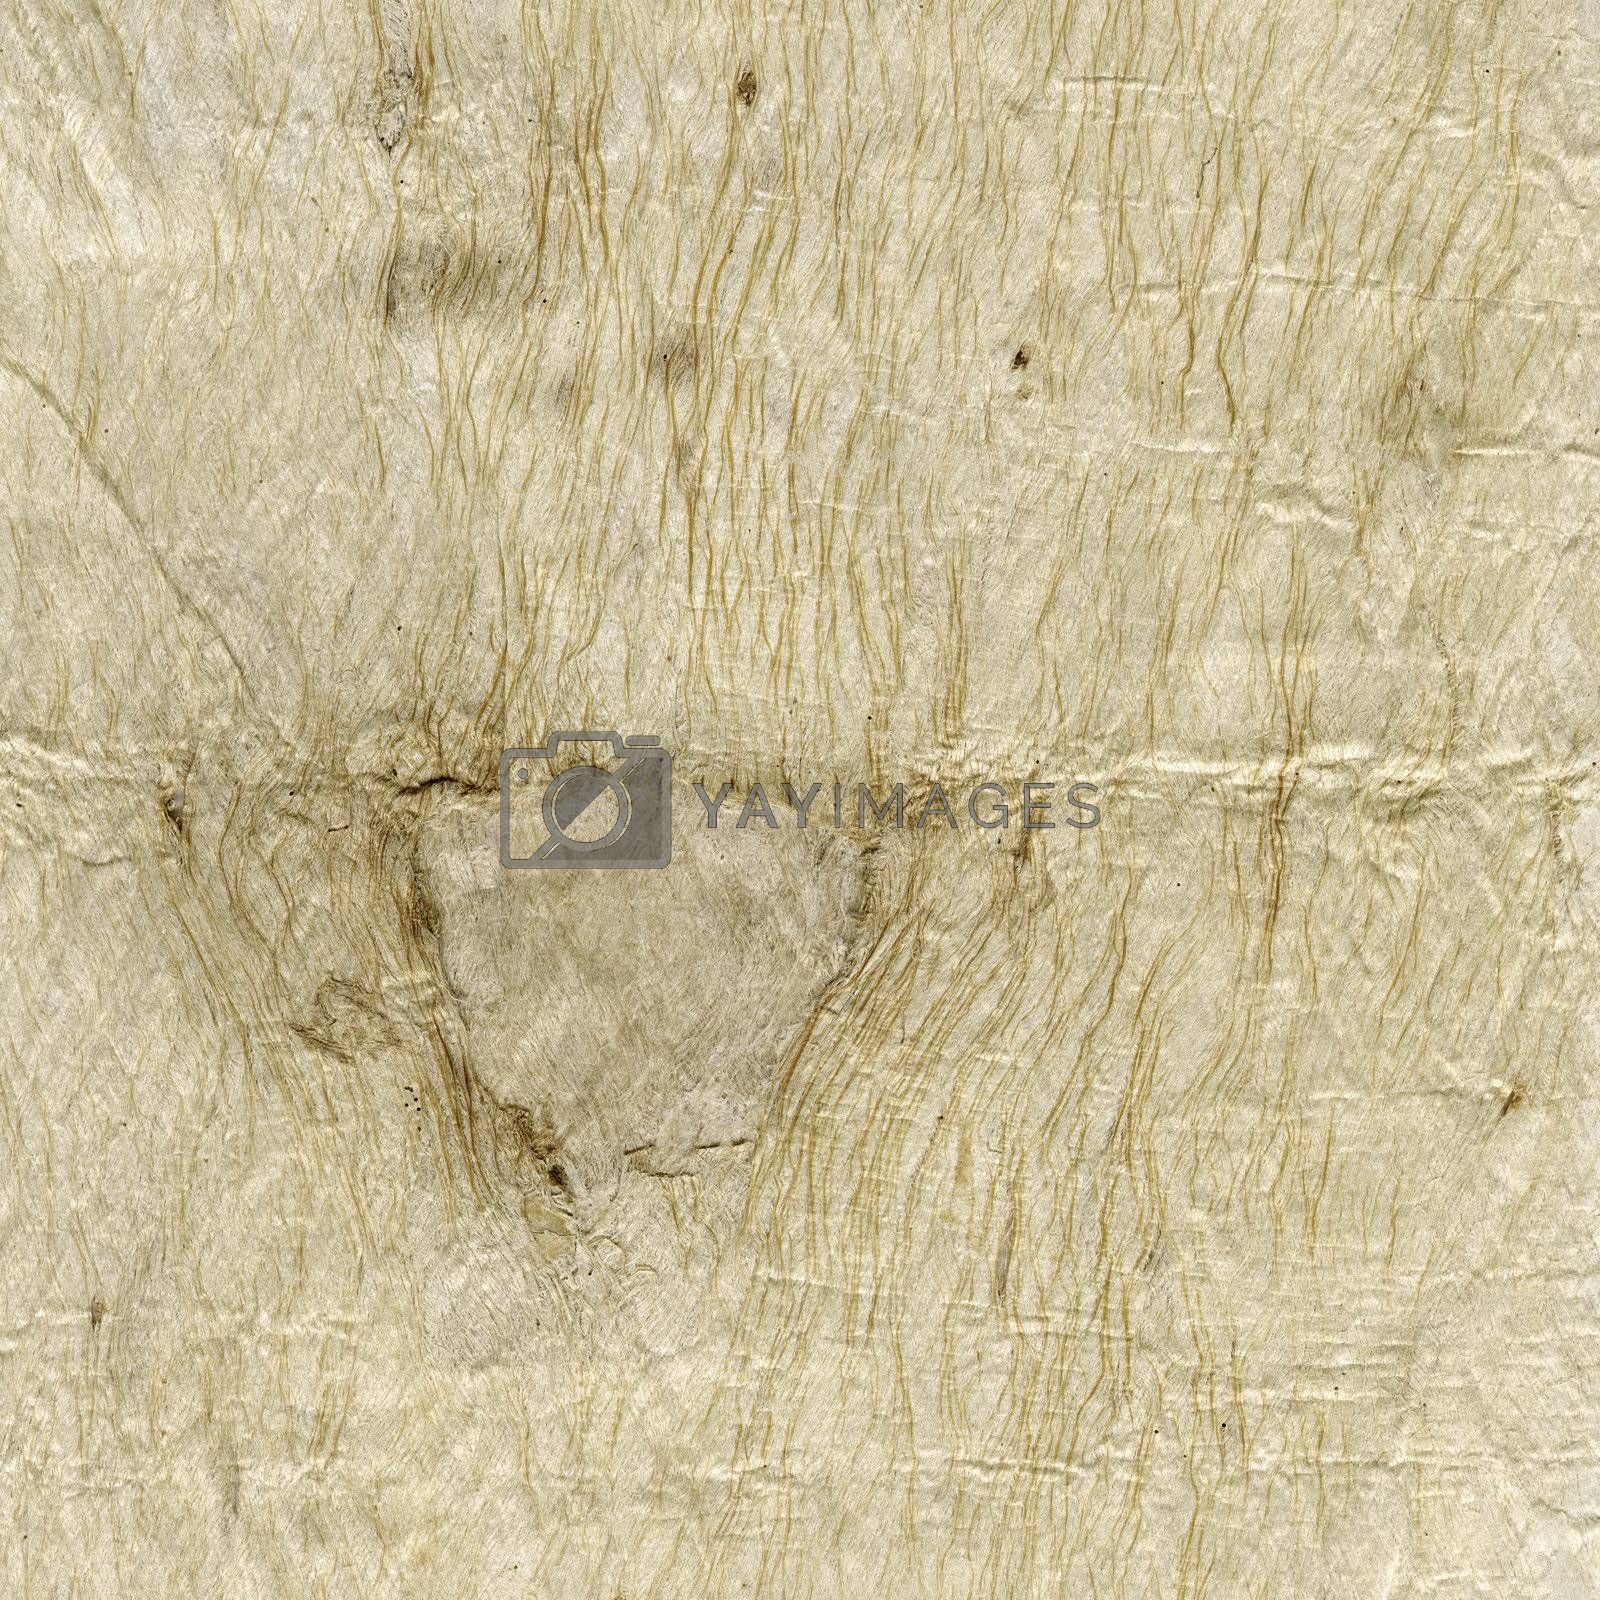 Royalty free image of handmade paper texture by PixelsAway